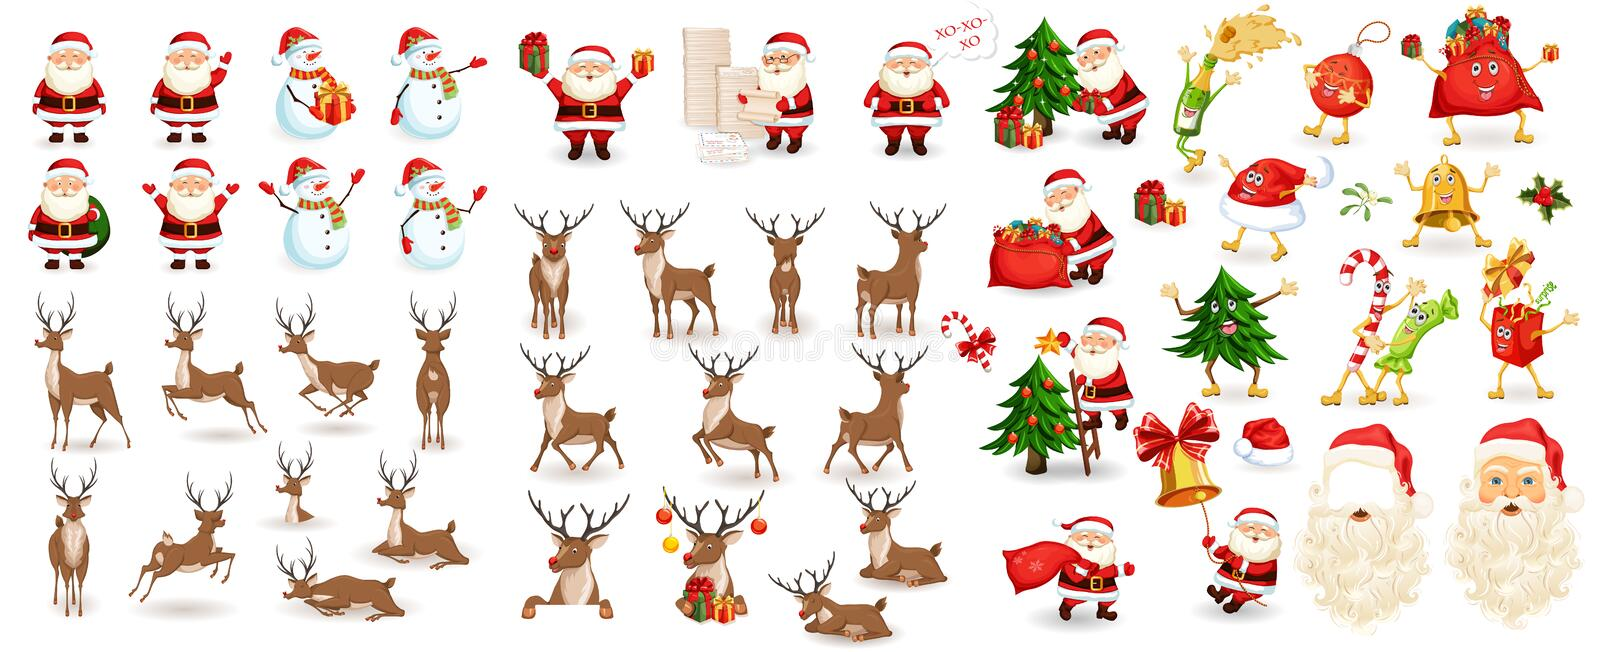 Big Christmas set. Santa Claus, reindeer, snowman, tree, bag with gifts, hat, sweets beard. Xmas decoration and elements. Photo props. Characters run, jump